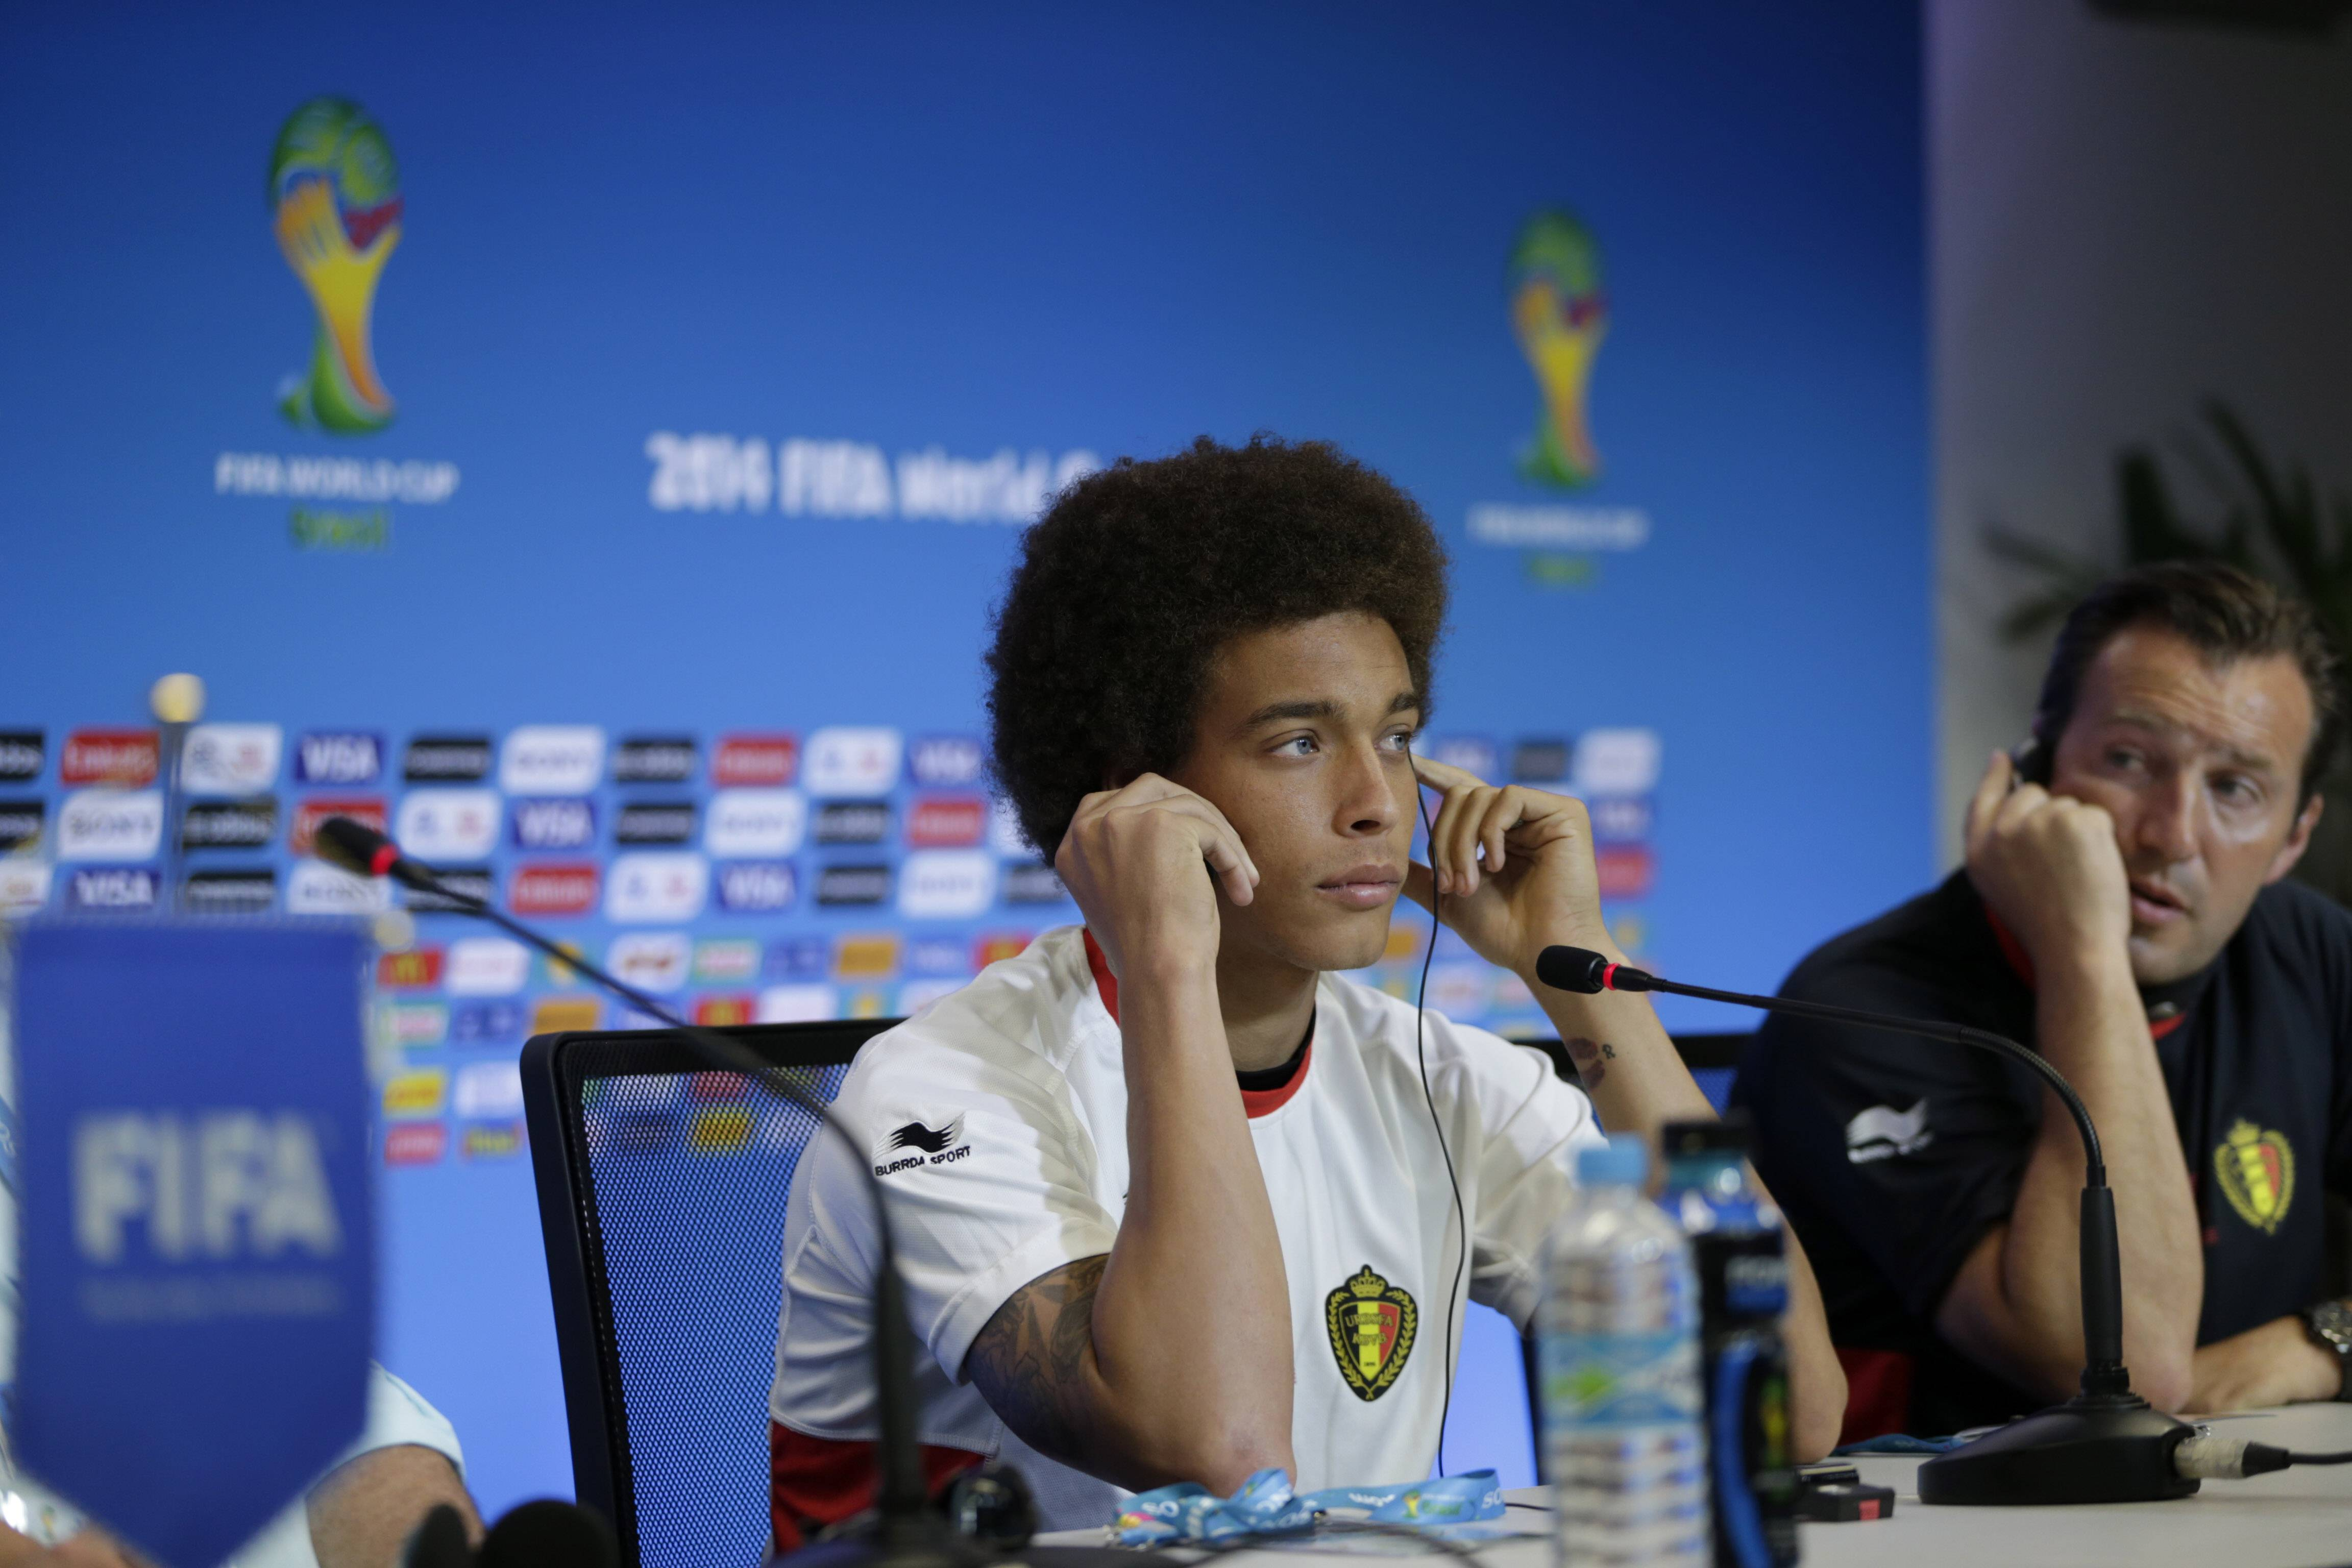 Belgium's Axel Witsel, left, and head coach Marc Wilmots Monday during a press conference the day before their World Cup round of 16 soccer match against the United States at Arena Fonte Nova in Salvador, Brazil.